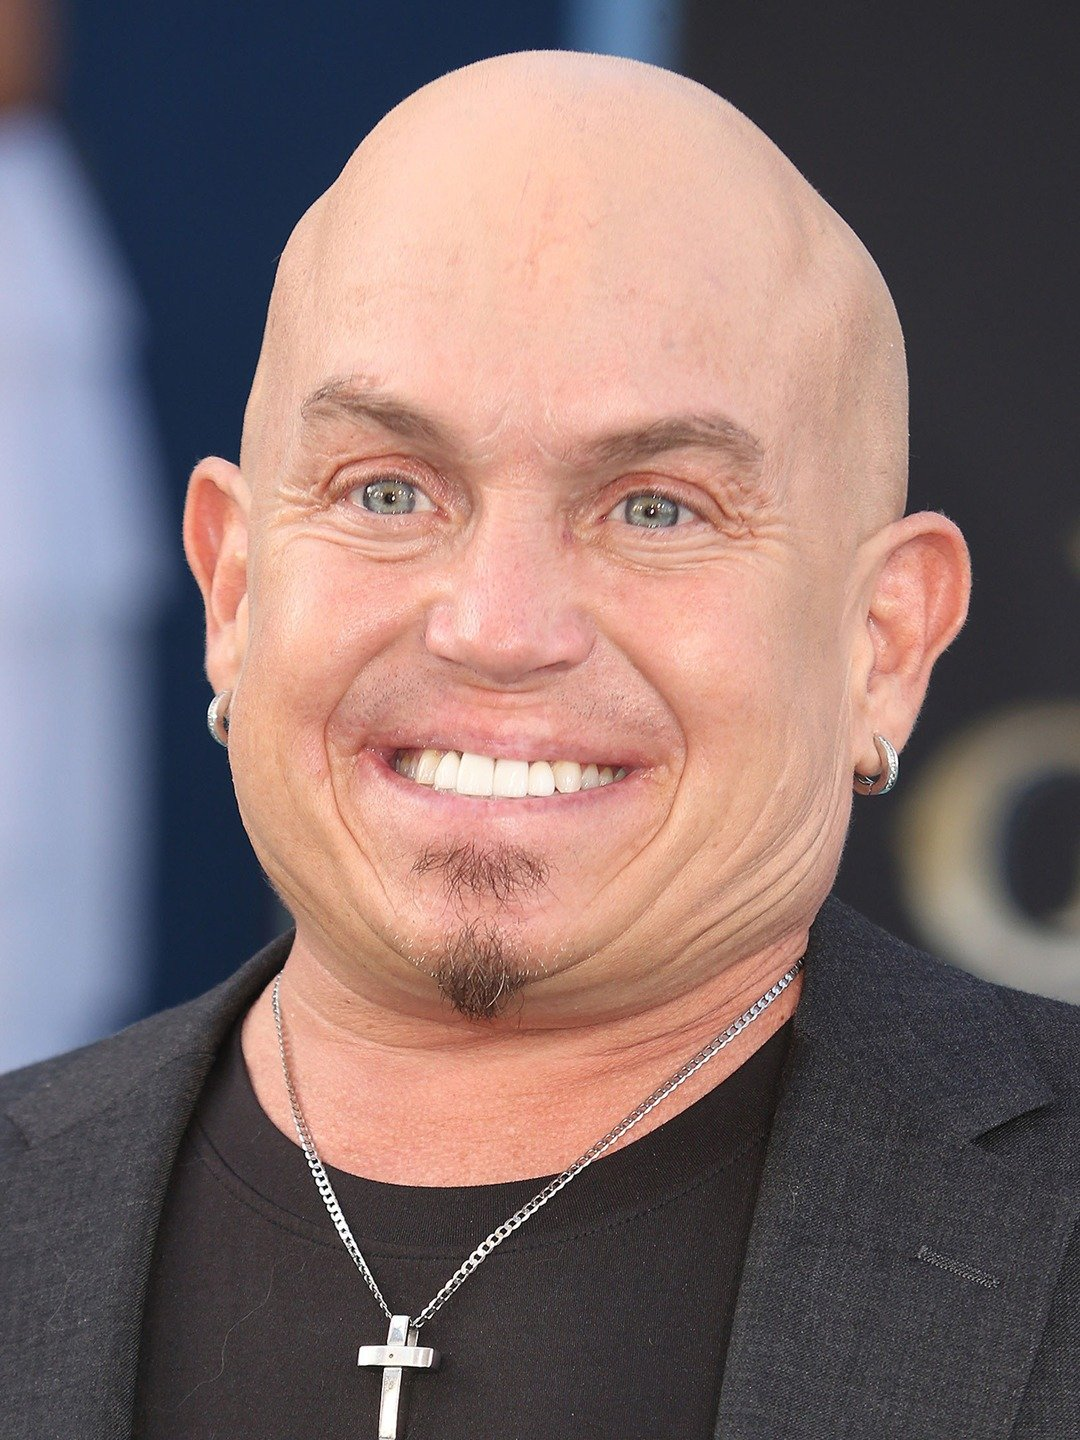 How tall is Martin Klebba?